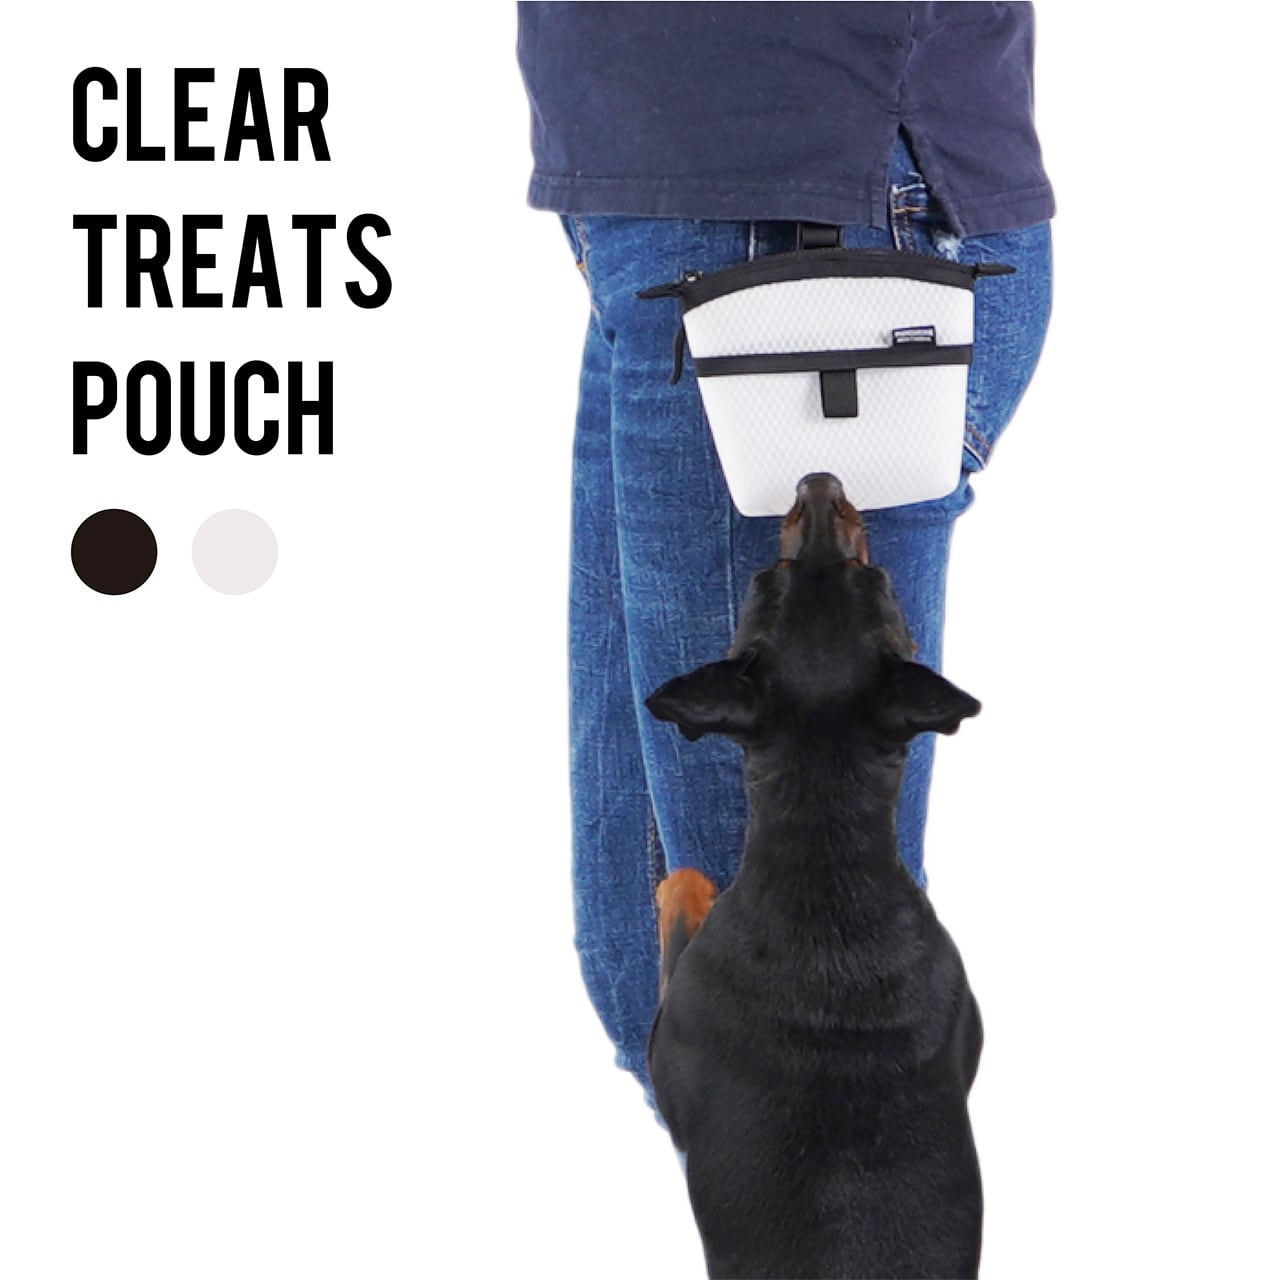 CLEAR TREATS POUCH クリアトリーツポーチ